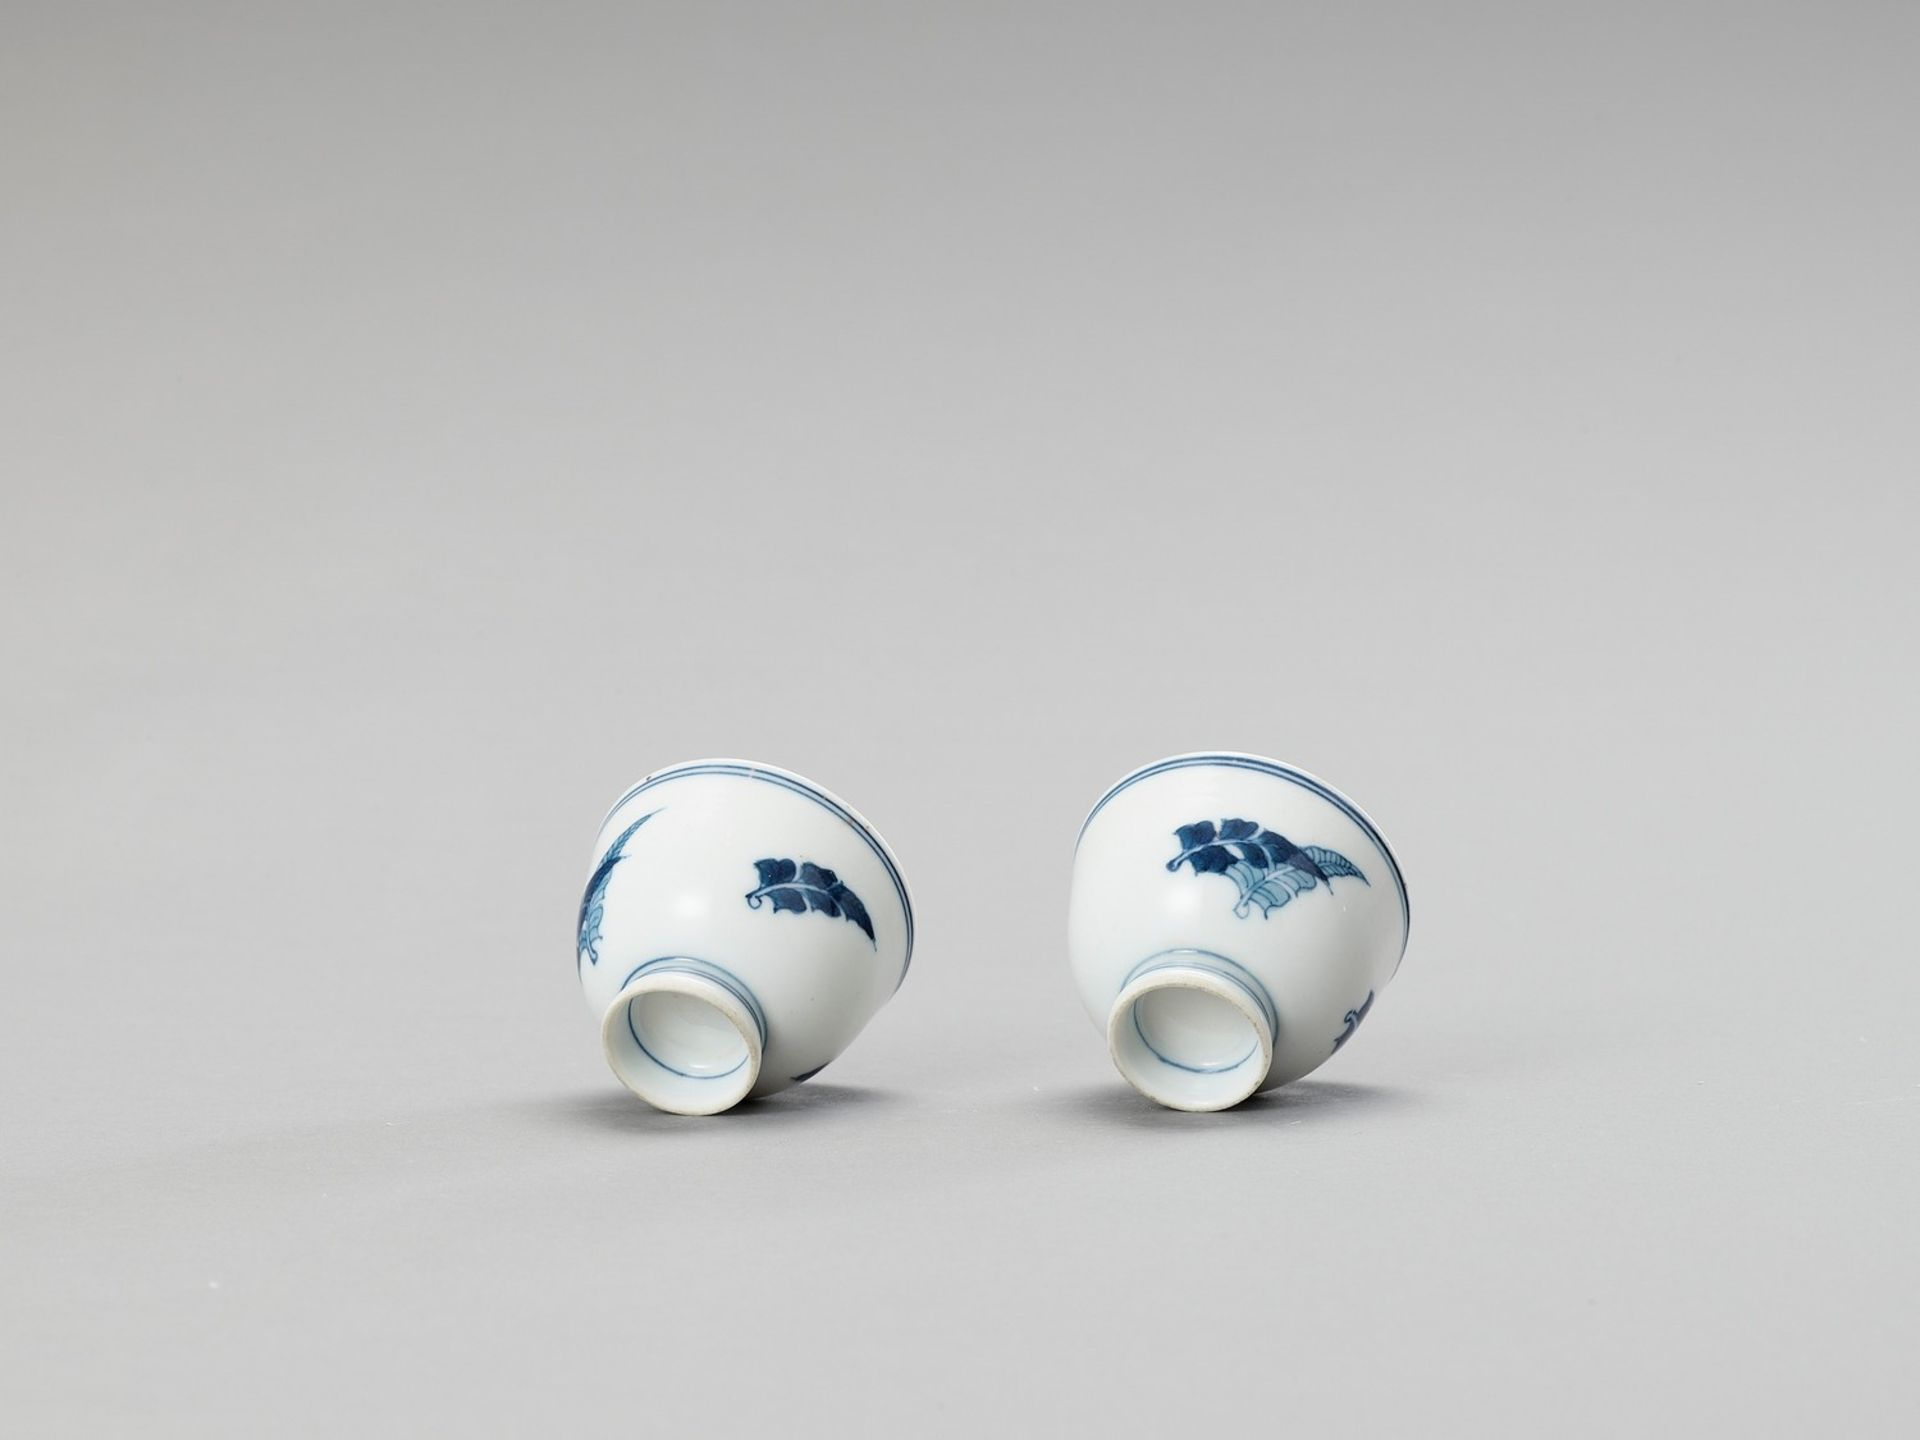 A SMALL PAIR OF BLUE AND WHITE PORCELAIN CUPS - Image 4 of 5